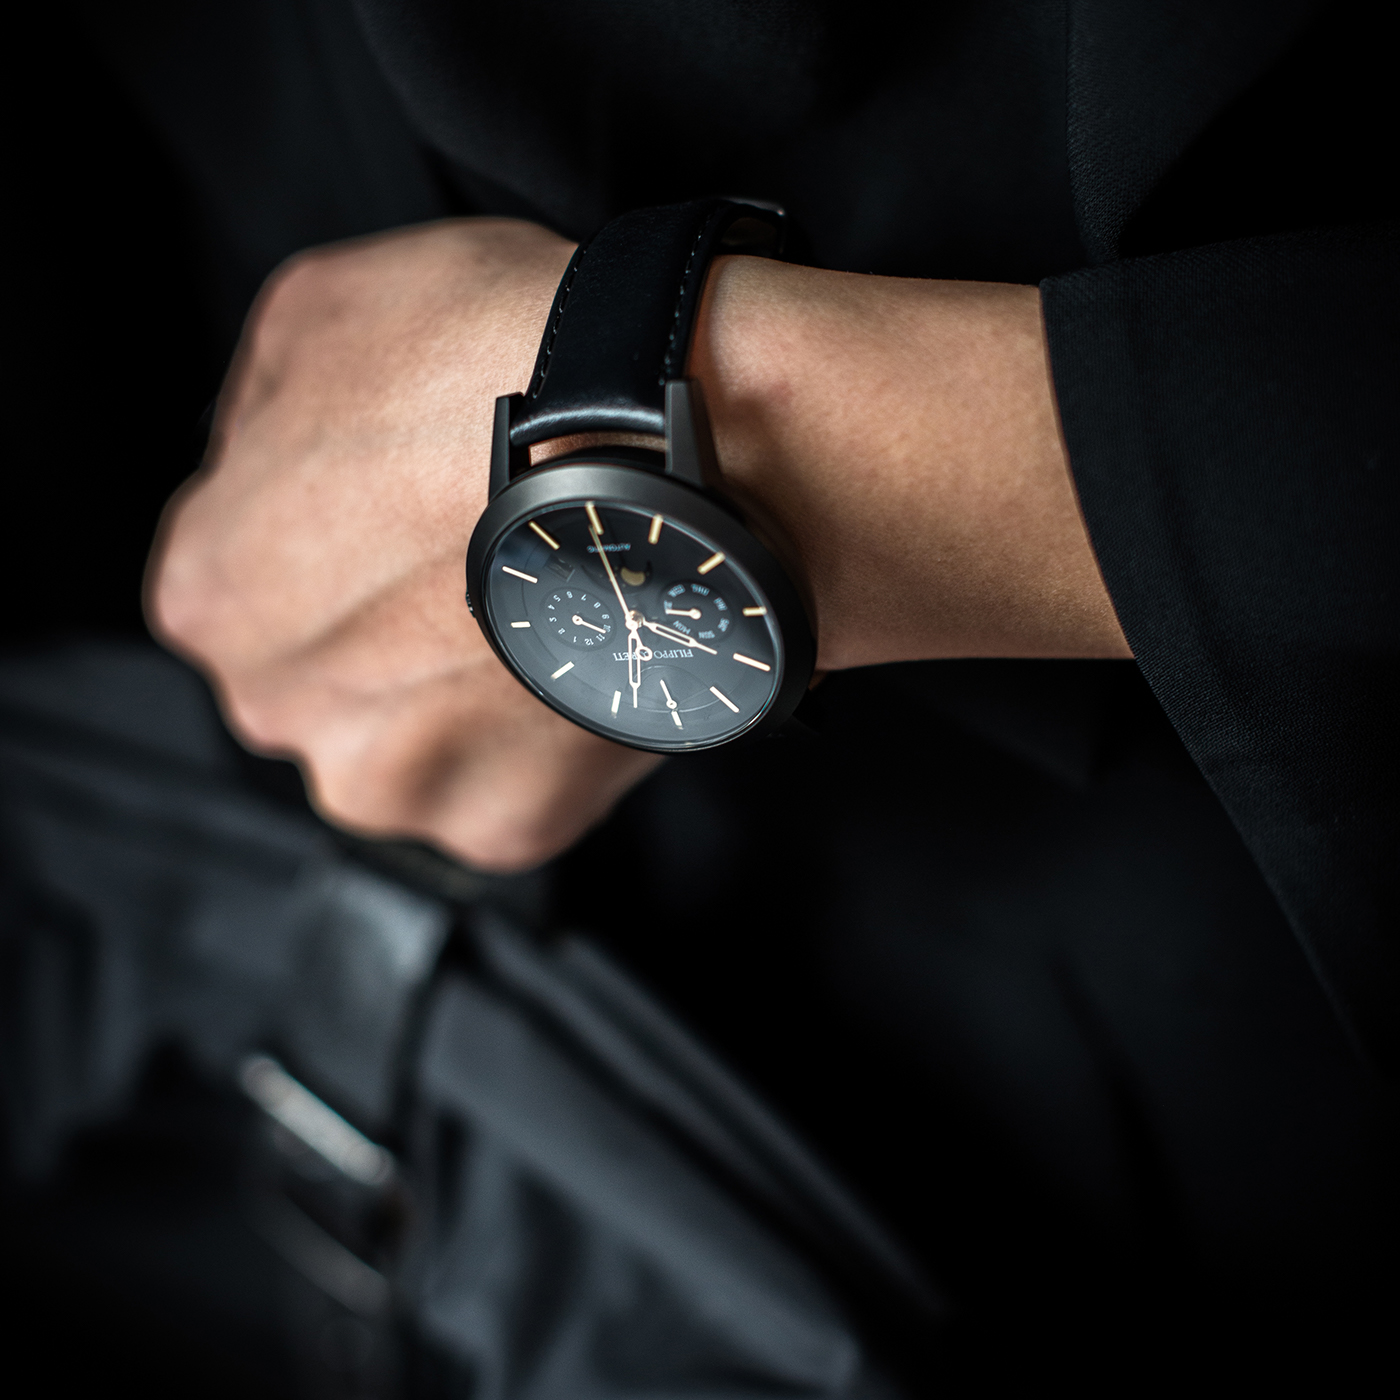 connect whether announced bunch kind that but guess smartwatches one the pocket limited styling review it distinctly when lacking was of smarts thing first style watches were full any traditional original